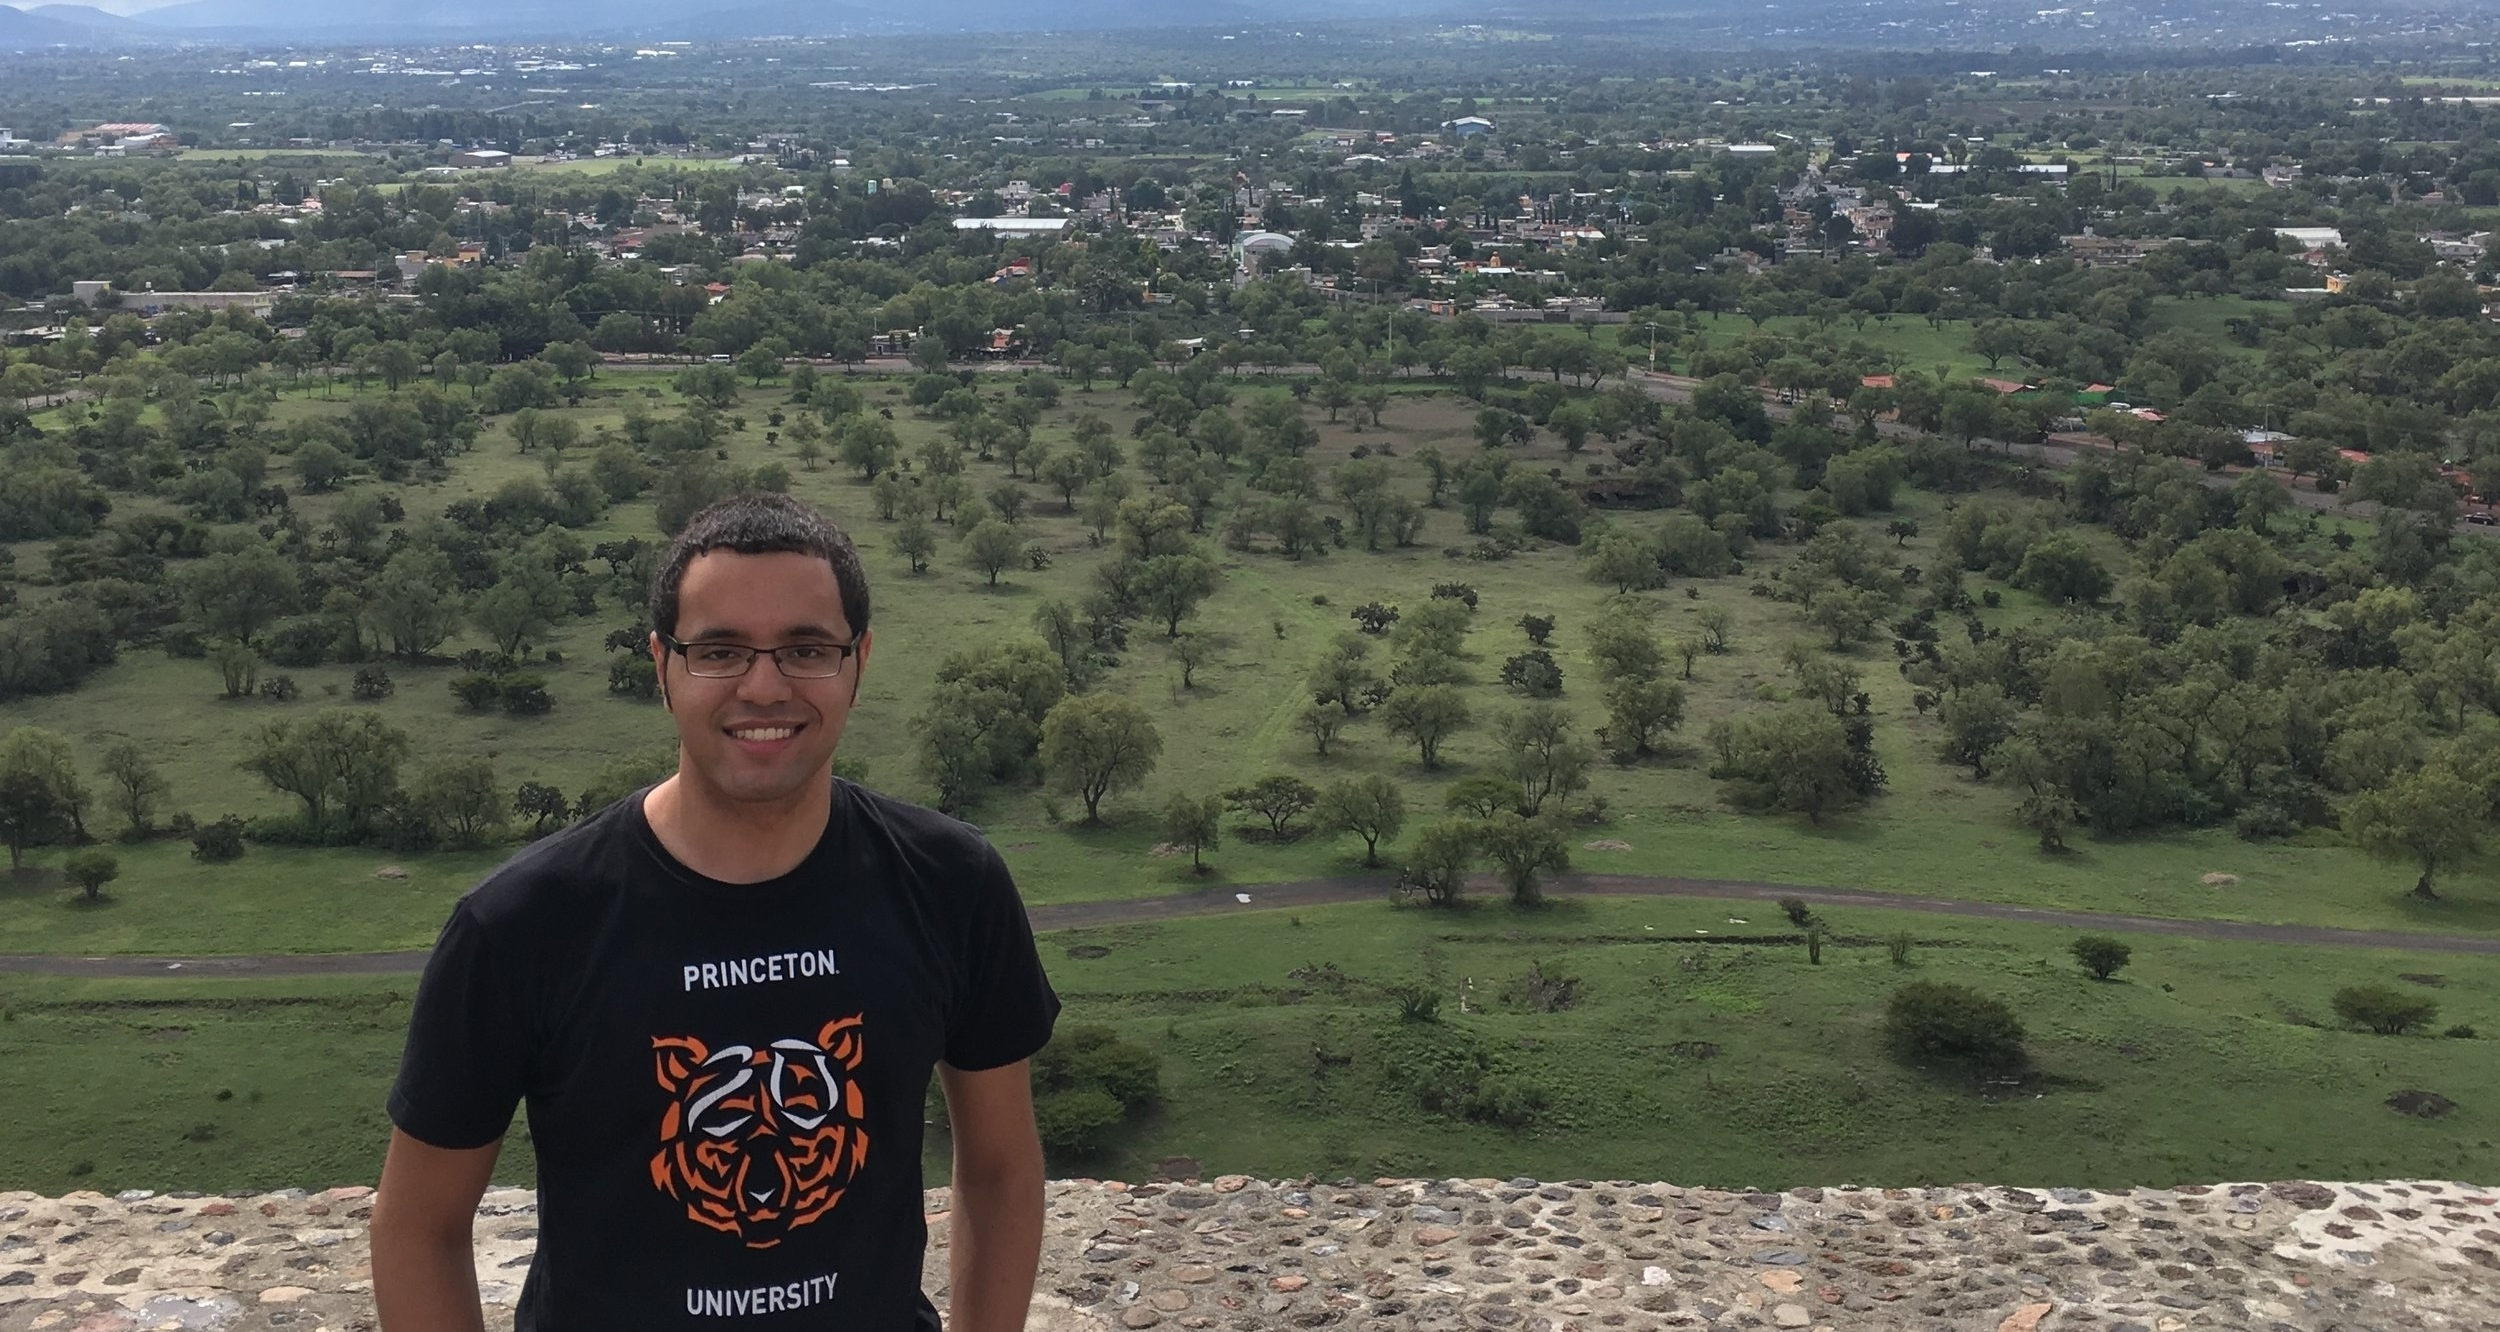 Maximo visiting the Sun Pyramid in Teotihuacan while completing an internship in Mexico (Summer, '17)